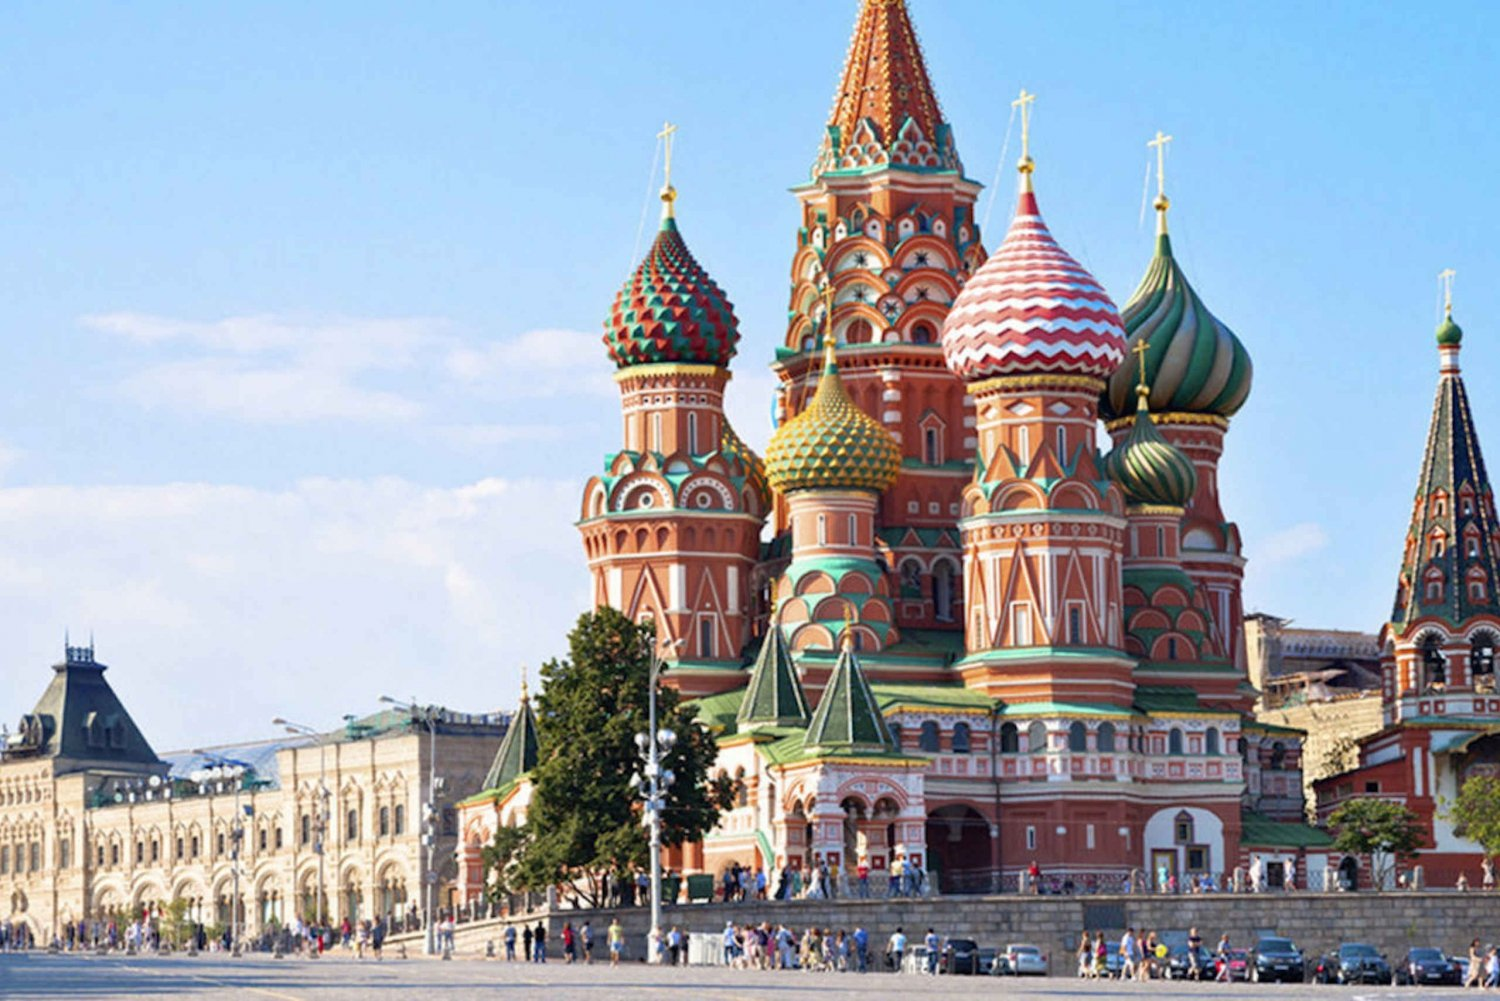 2-Hour Red Square and Zaryadye Park Private Tour